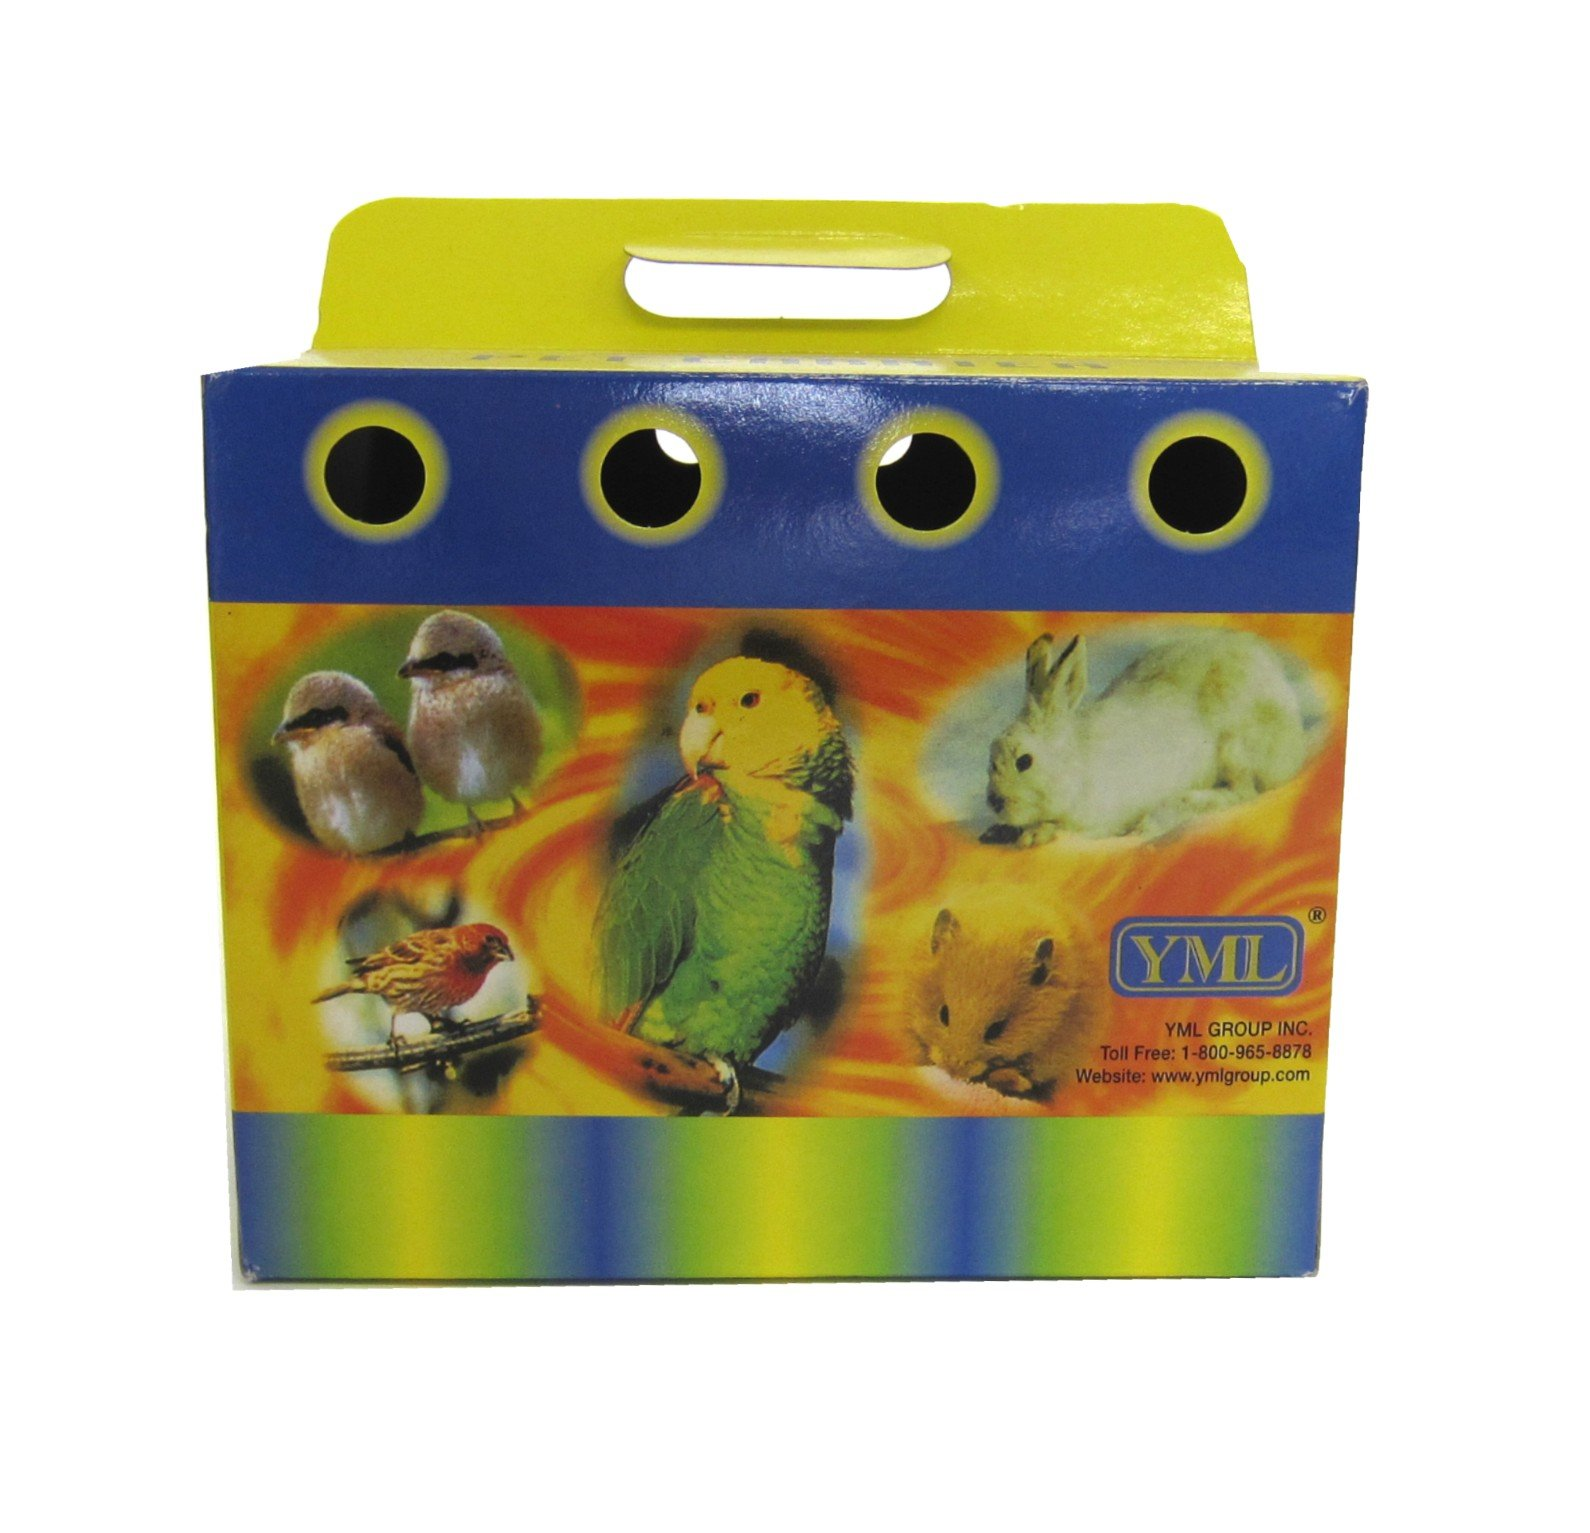 YML Cardboard Carrier for Small Animals or Birds, Medium, Lot of 100